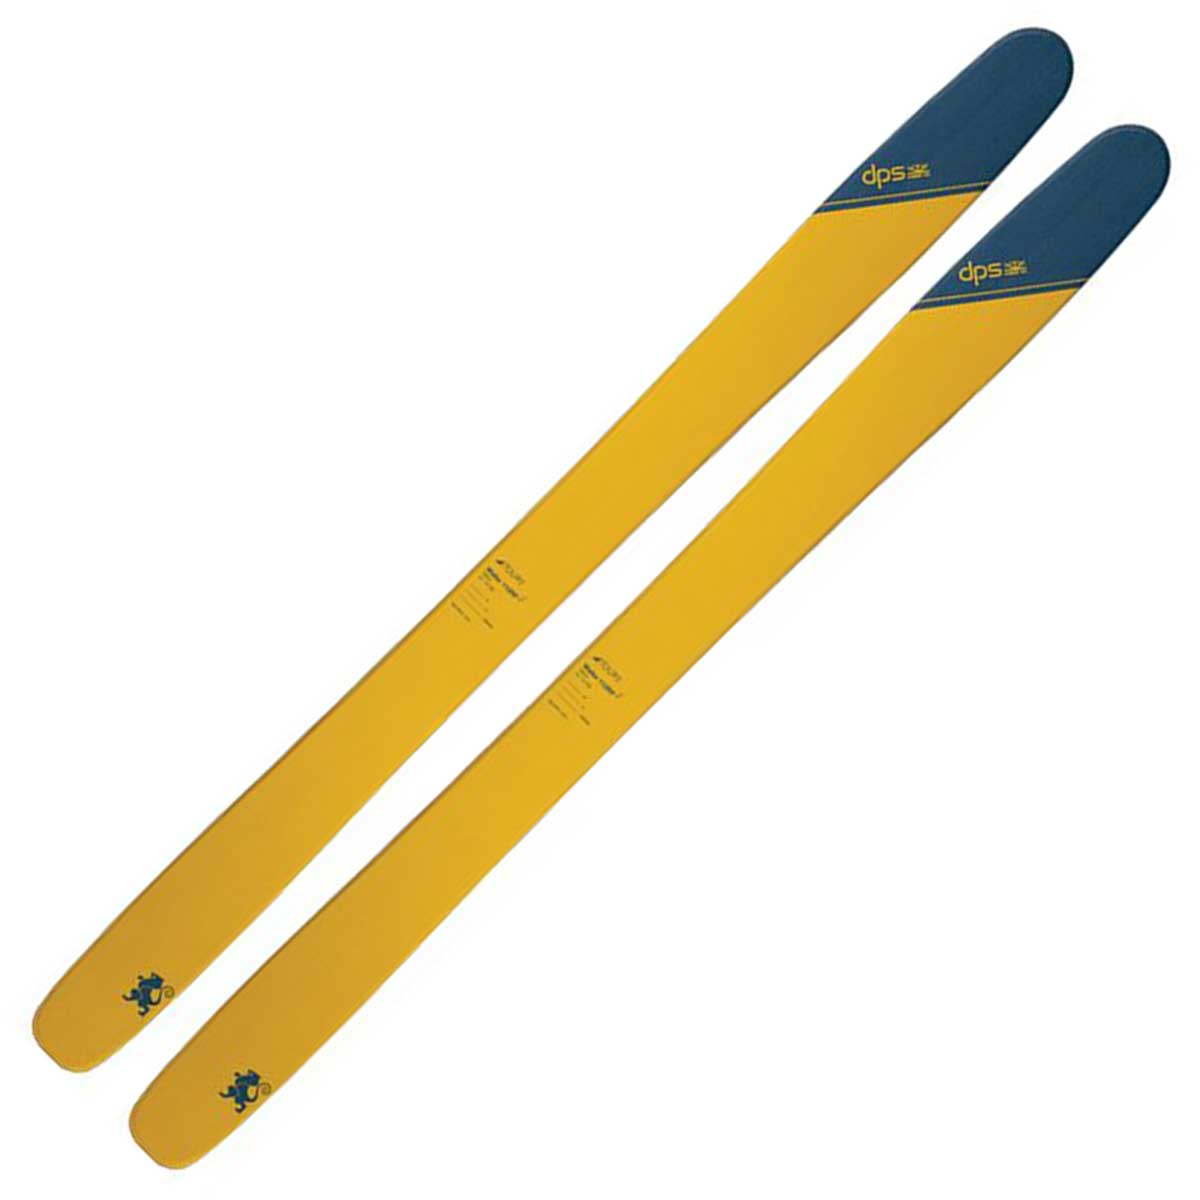 DPS Wailer 112 RP2 Tour1 Ski in tribeca yellow